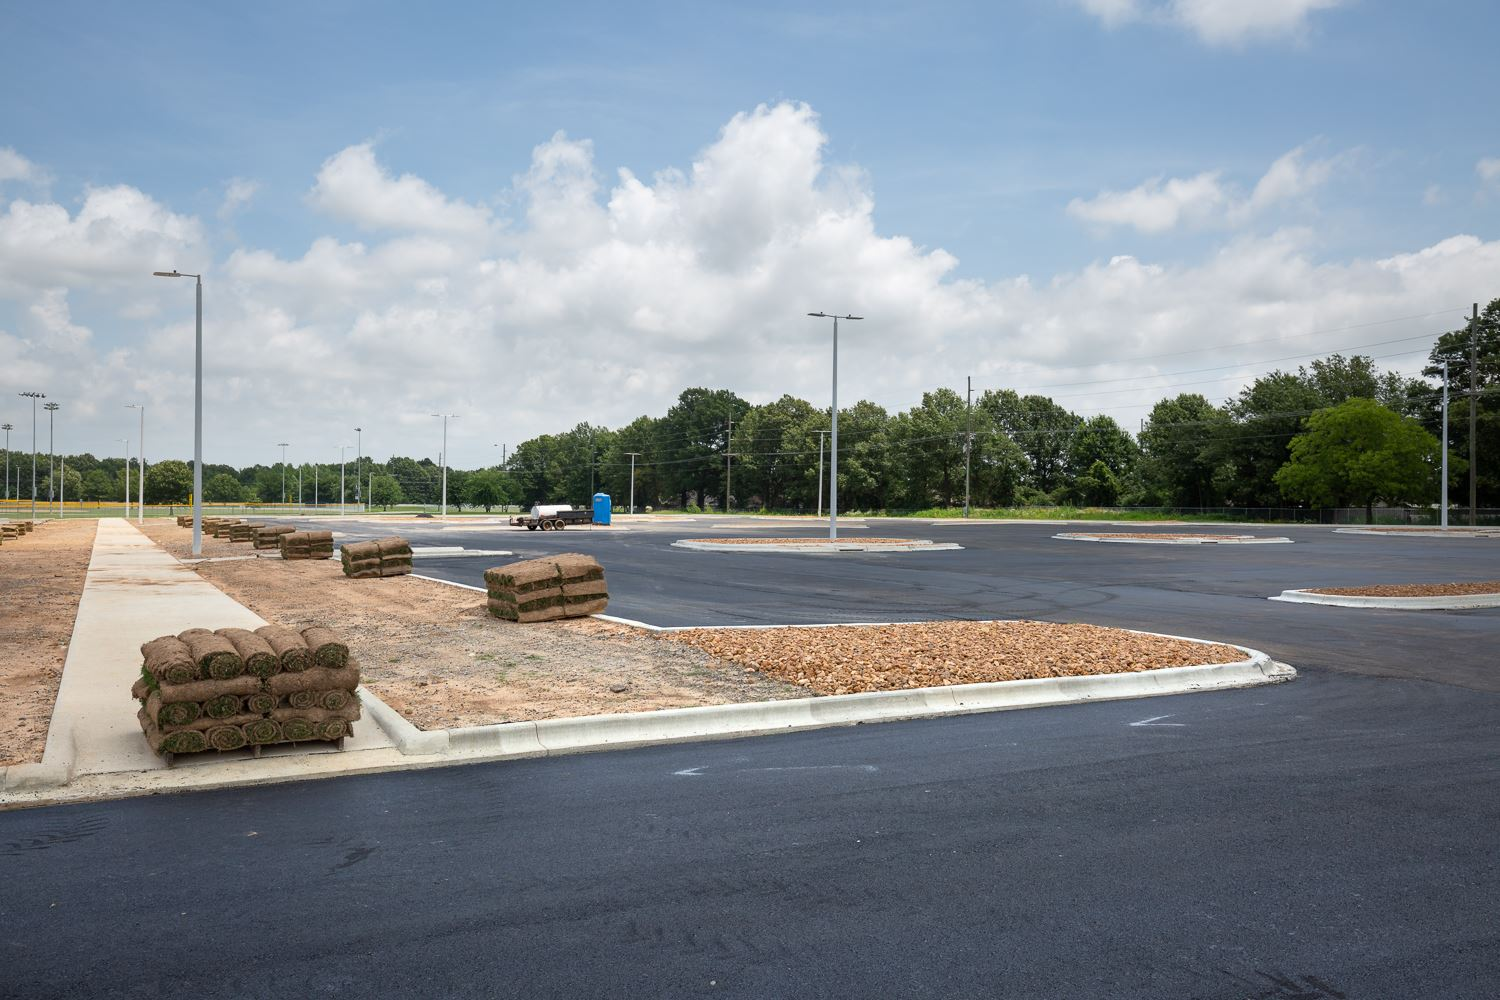 Southside Softball Complex parking lot paved with asphalt and rolls of sod being ready to install.